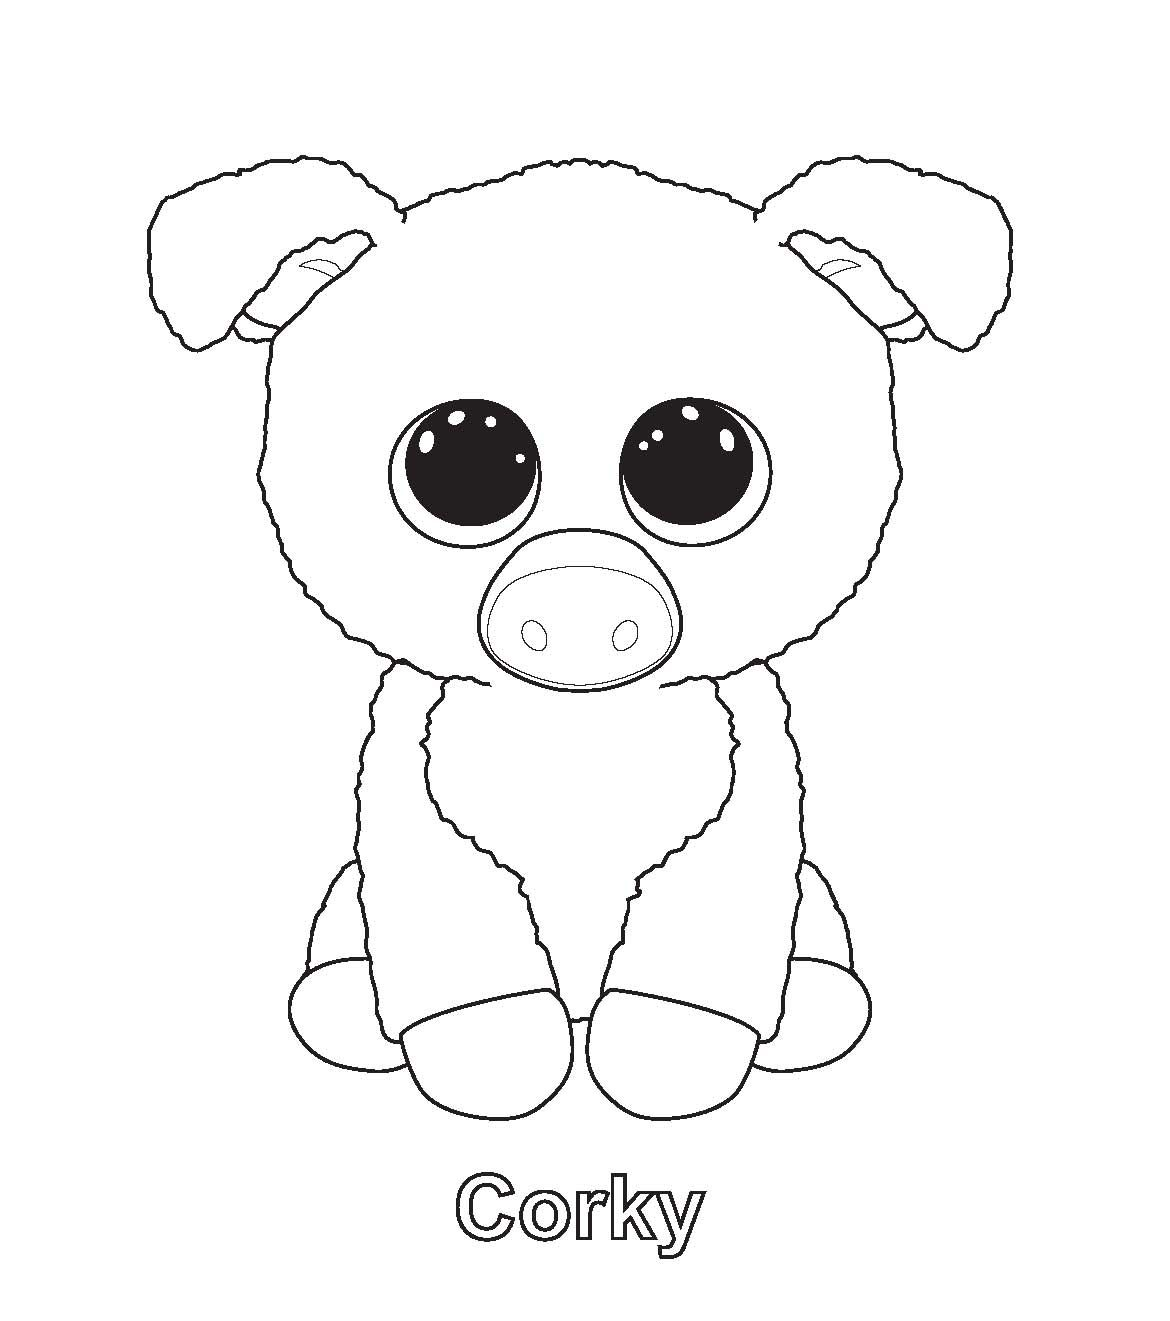 boo boo coloring pages - photo#33